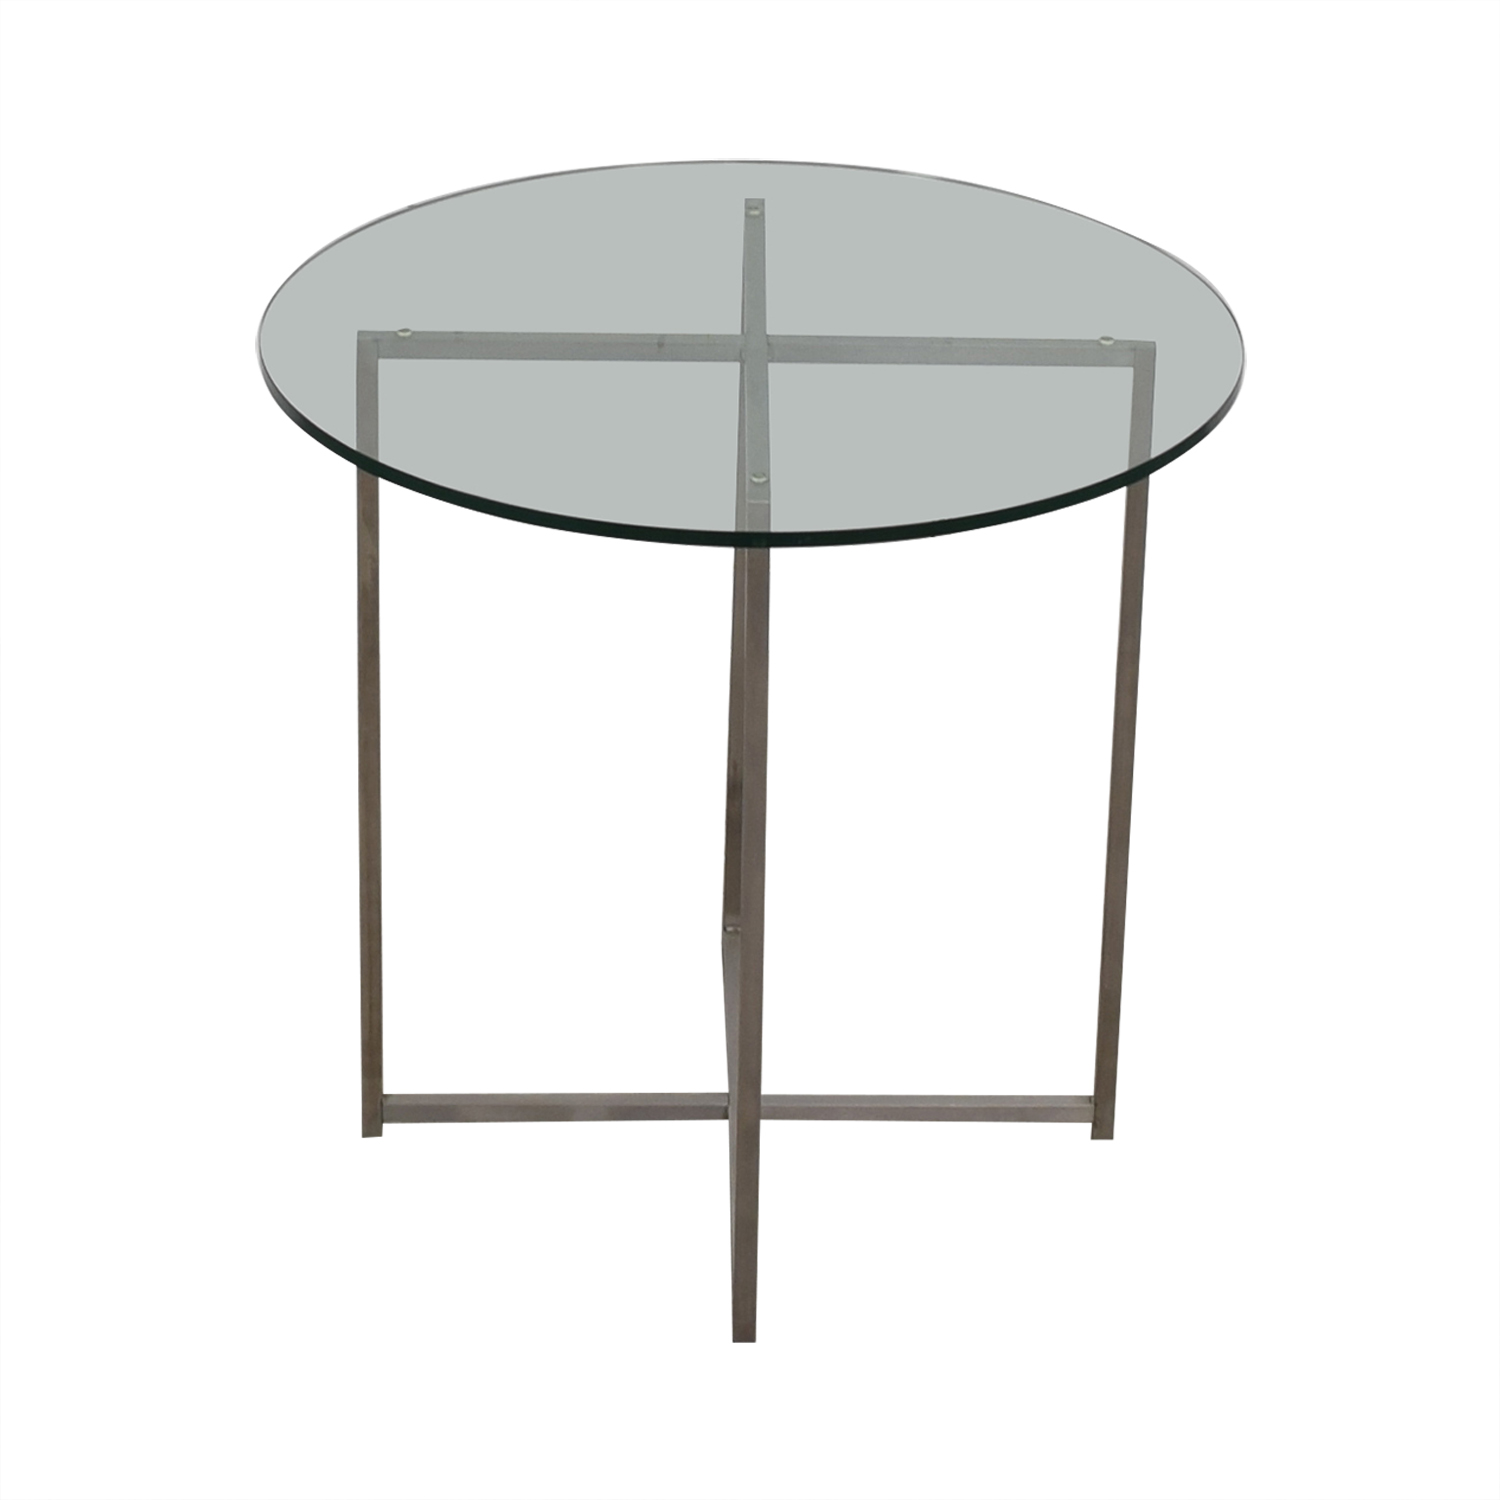 Room & Board Room & Board Stainless Steel and Glass Classic End Table used